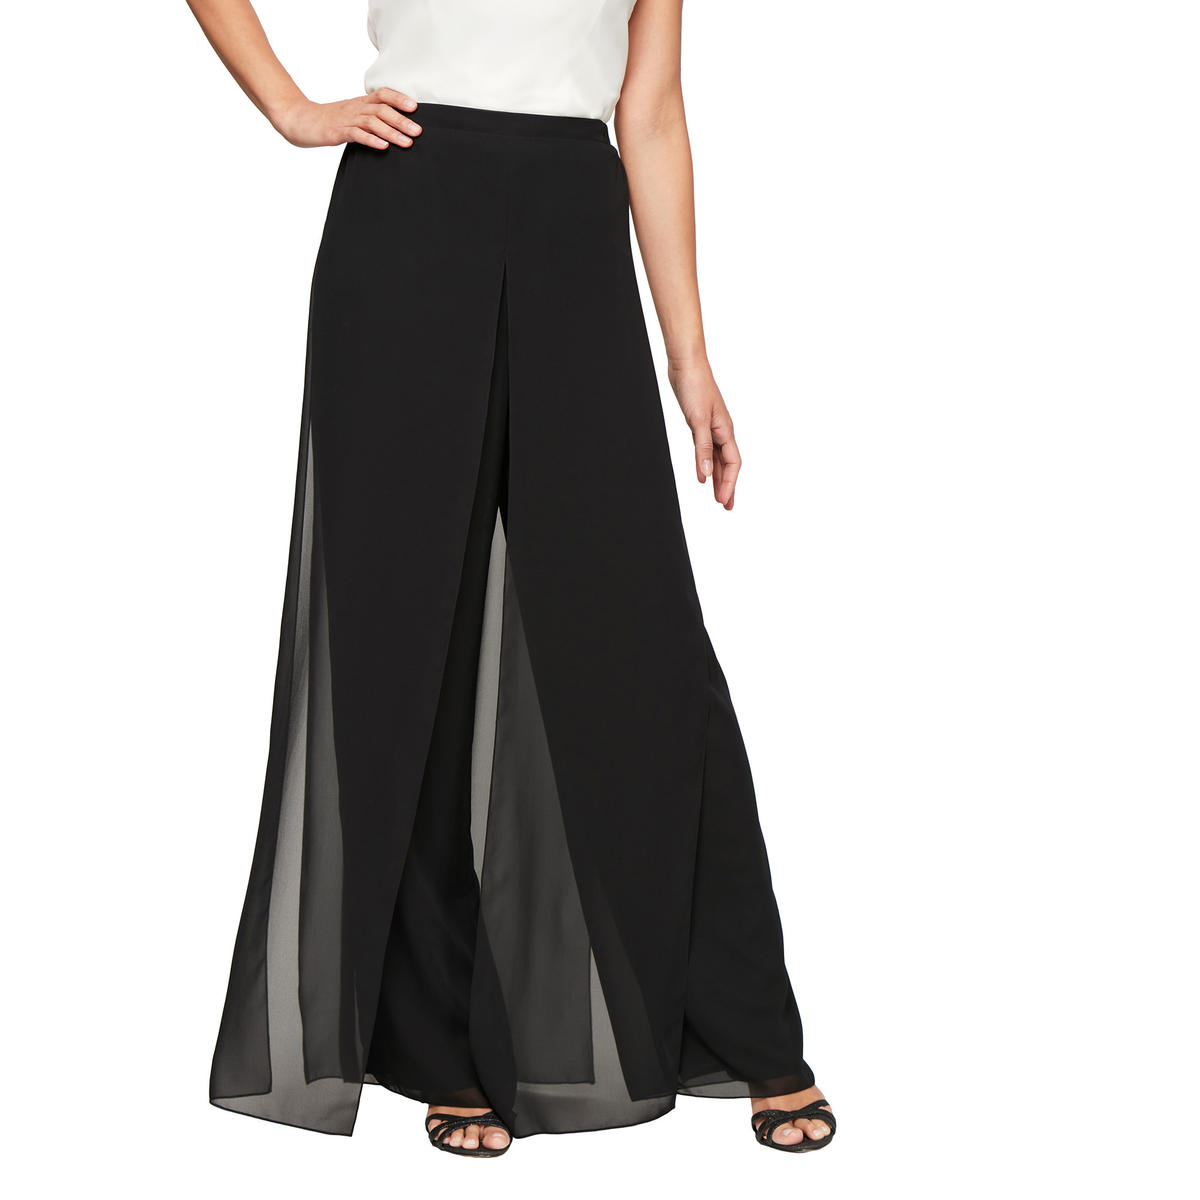 ALEX APPAREL GROUP INC - Chiffon Flyaway Pants